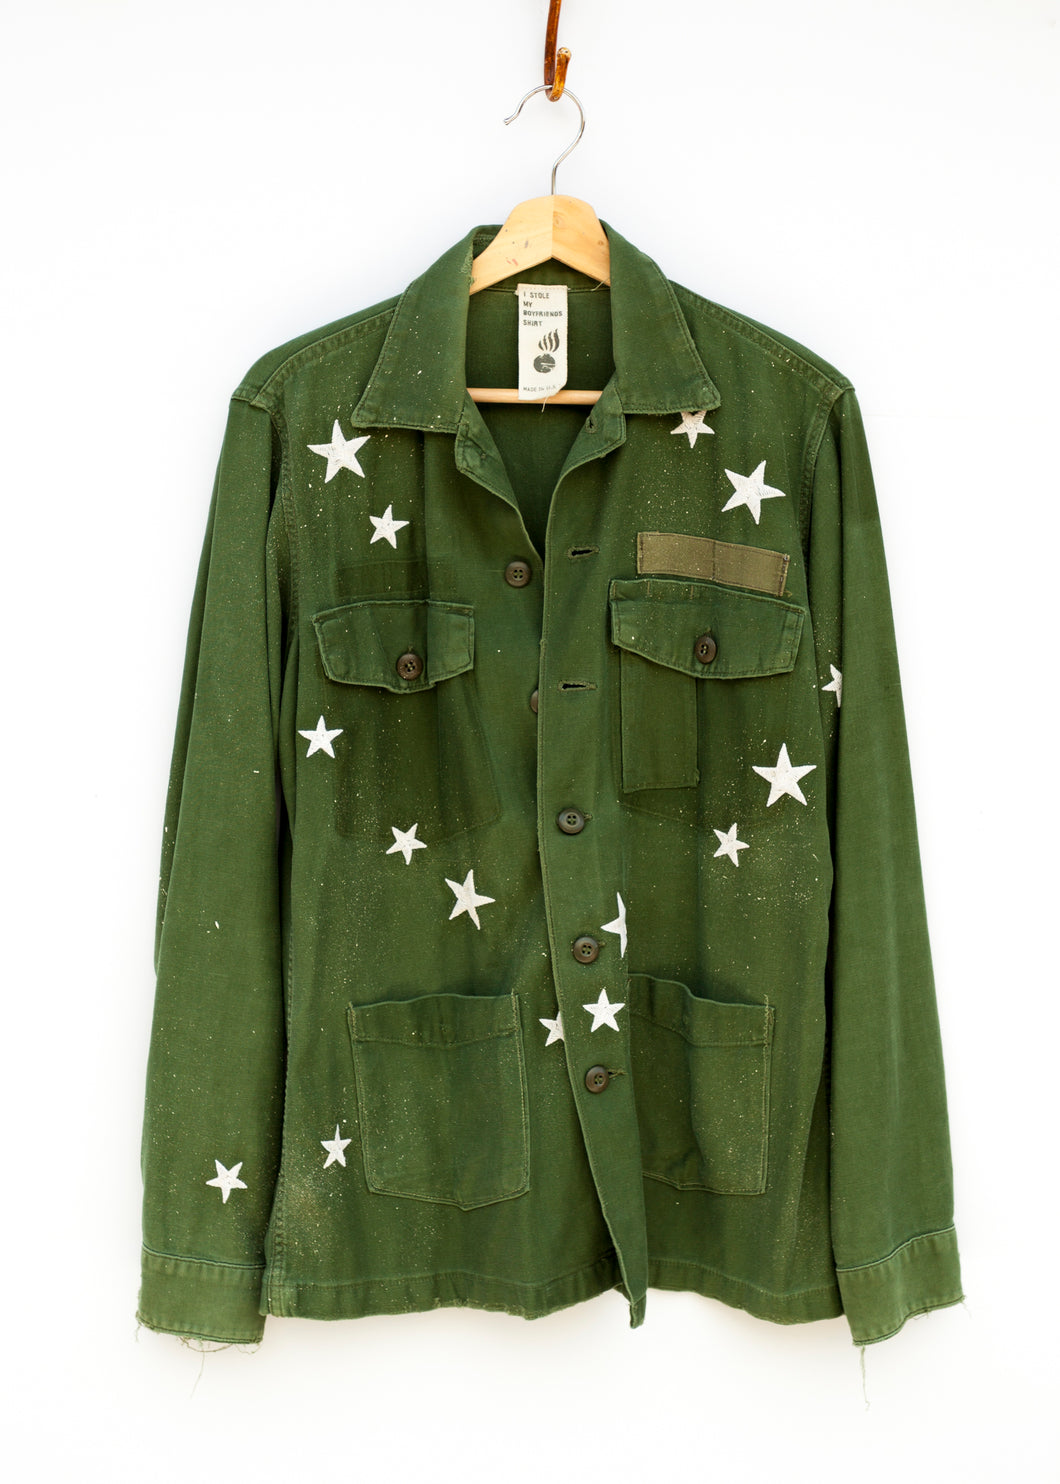 Stardust Army Jacket